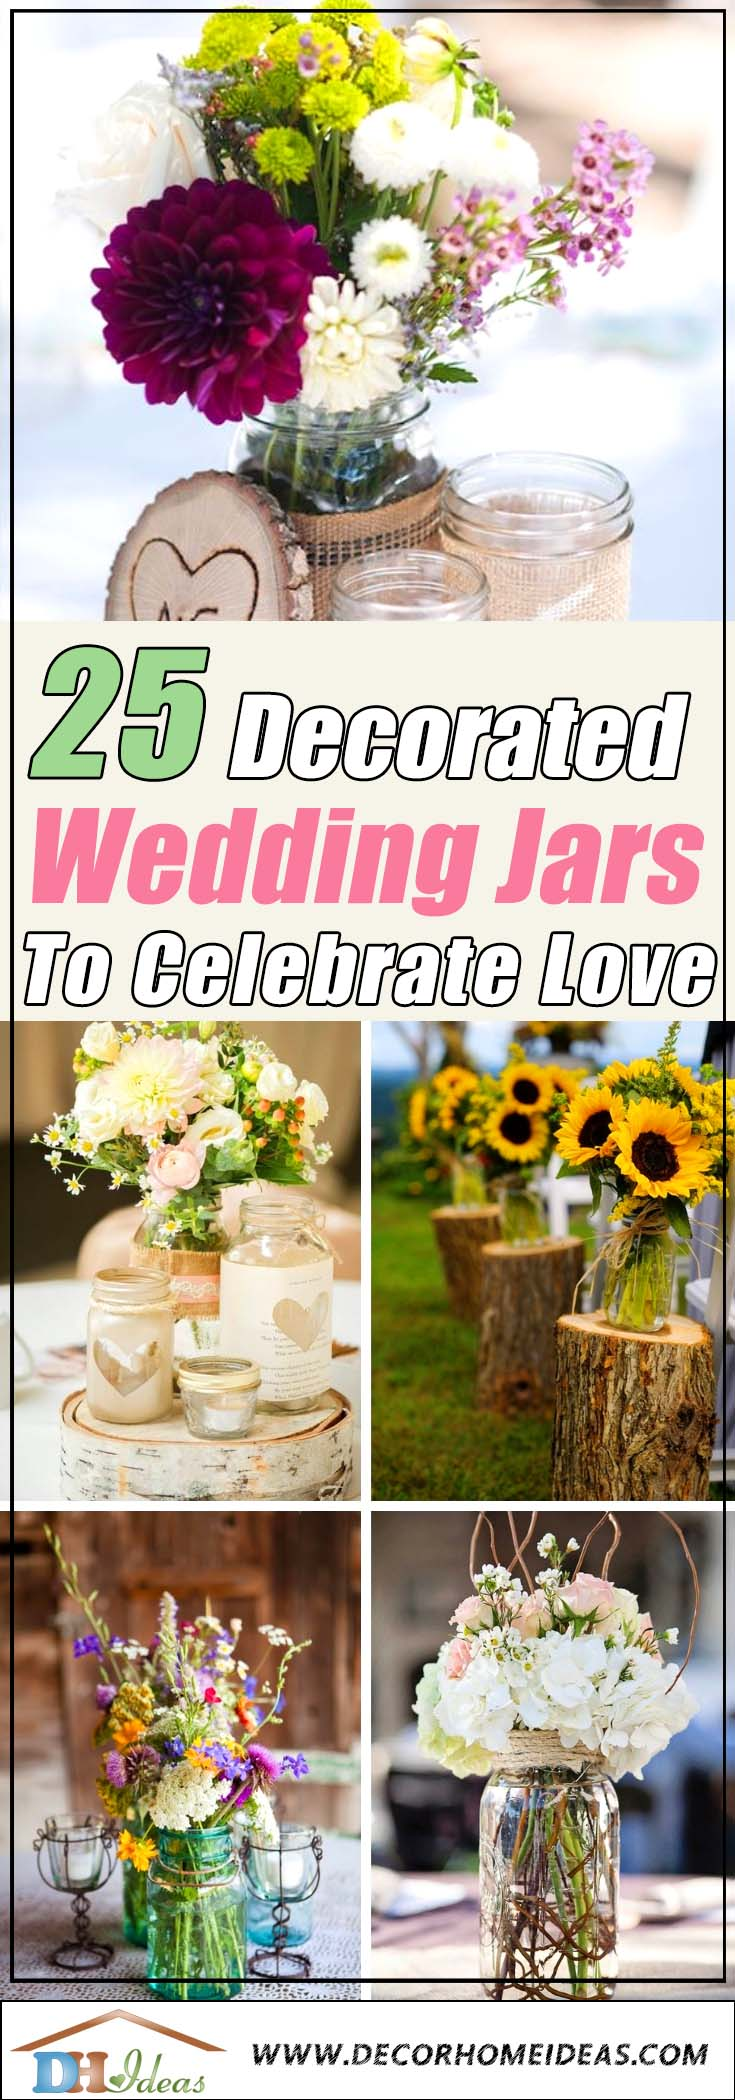 25 Decorated Wedding Jar Ideas To Celebrate Love | Get creative ideas for your wedding with these jars #jars #diy #homedecor #wedding #decoratingideas #garden #outdoor #decorhomeideas